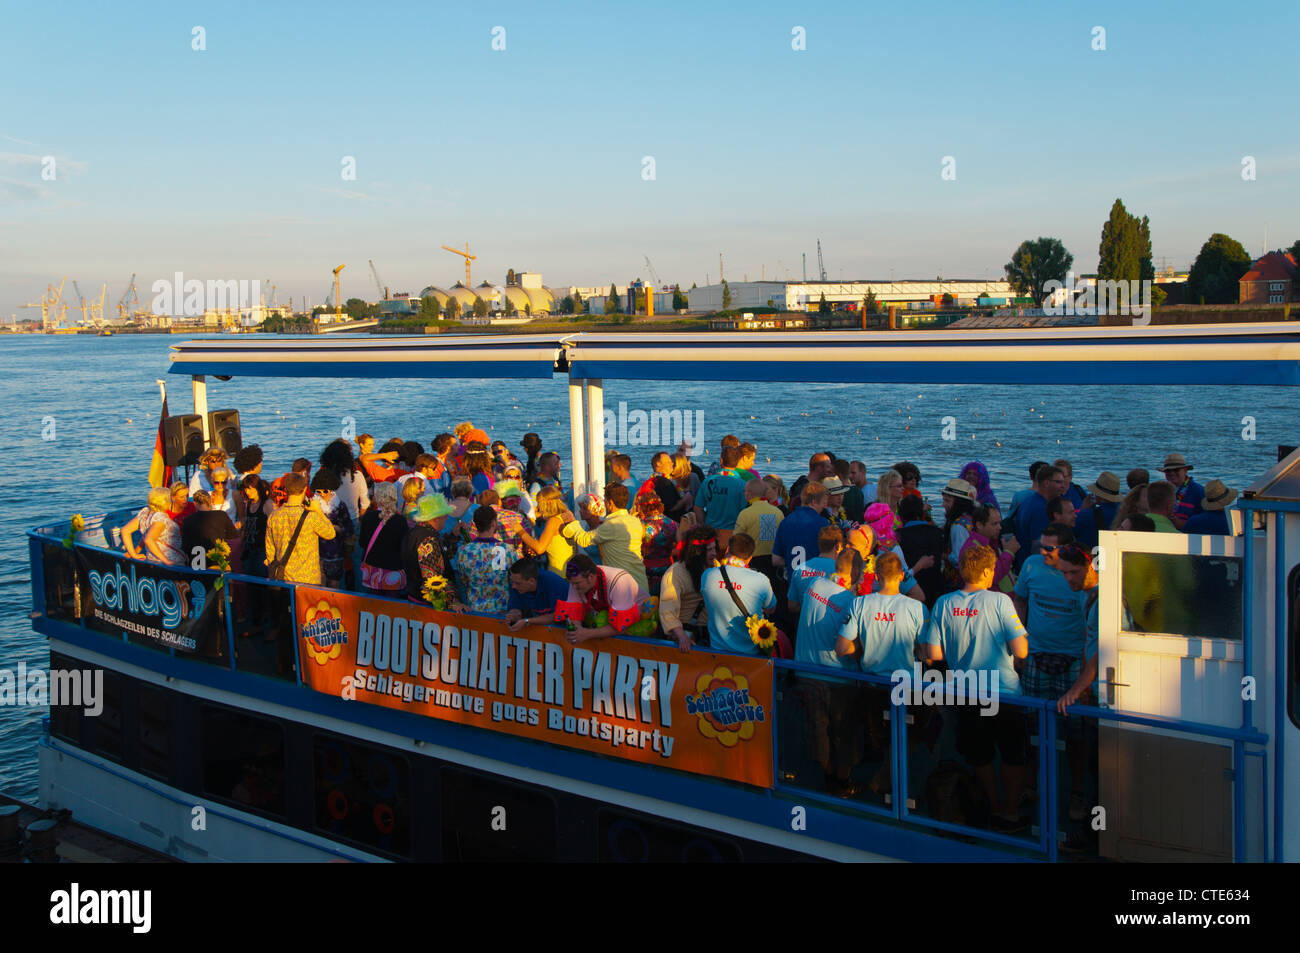 Stock photo hamburg germany riverside new - Party On A Boat In Norderelbe Riverside Central Hamburg Germany Europe